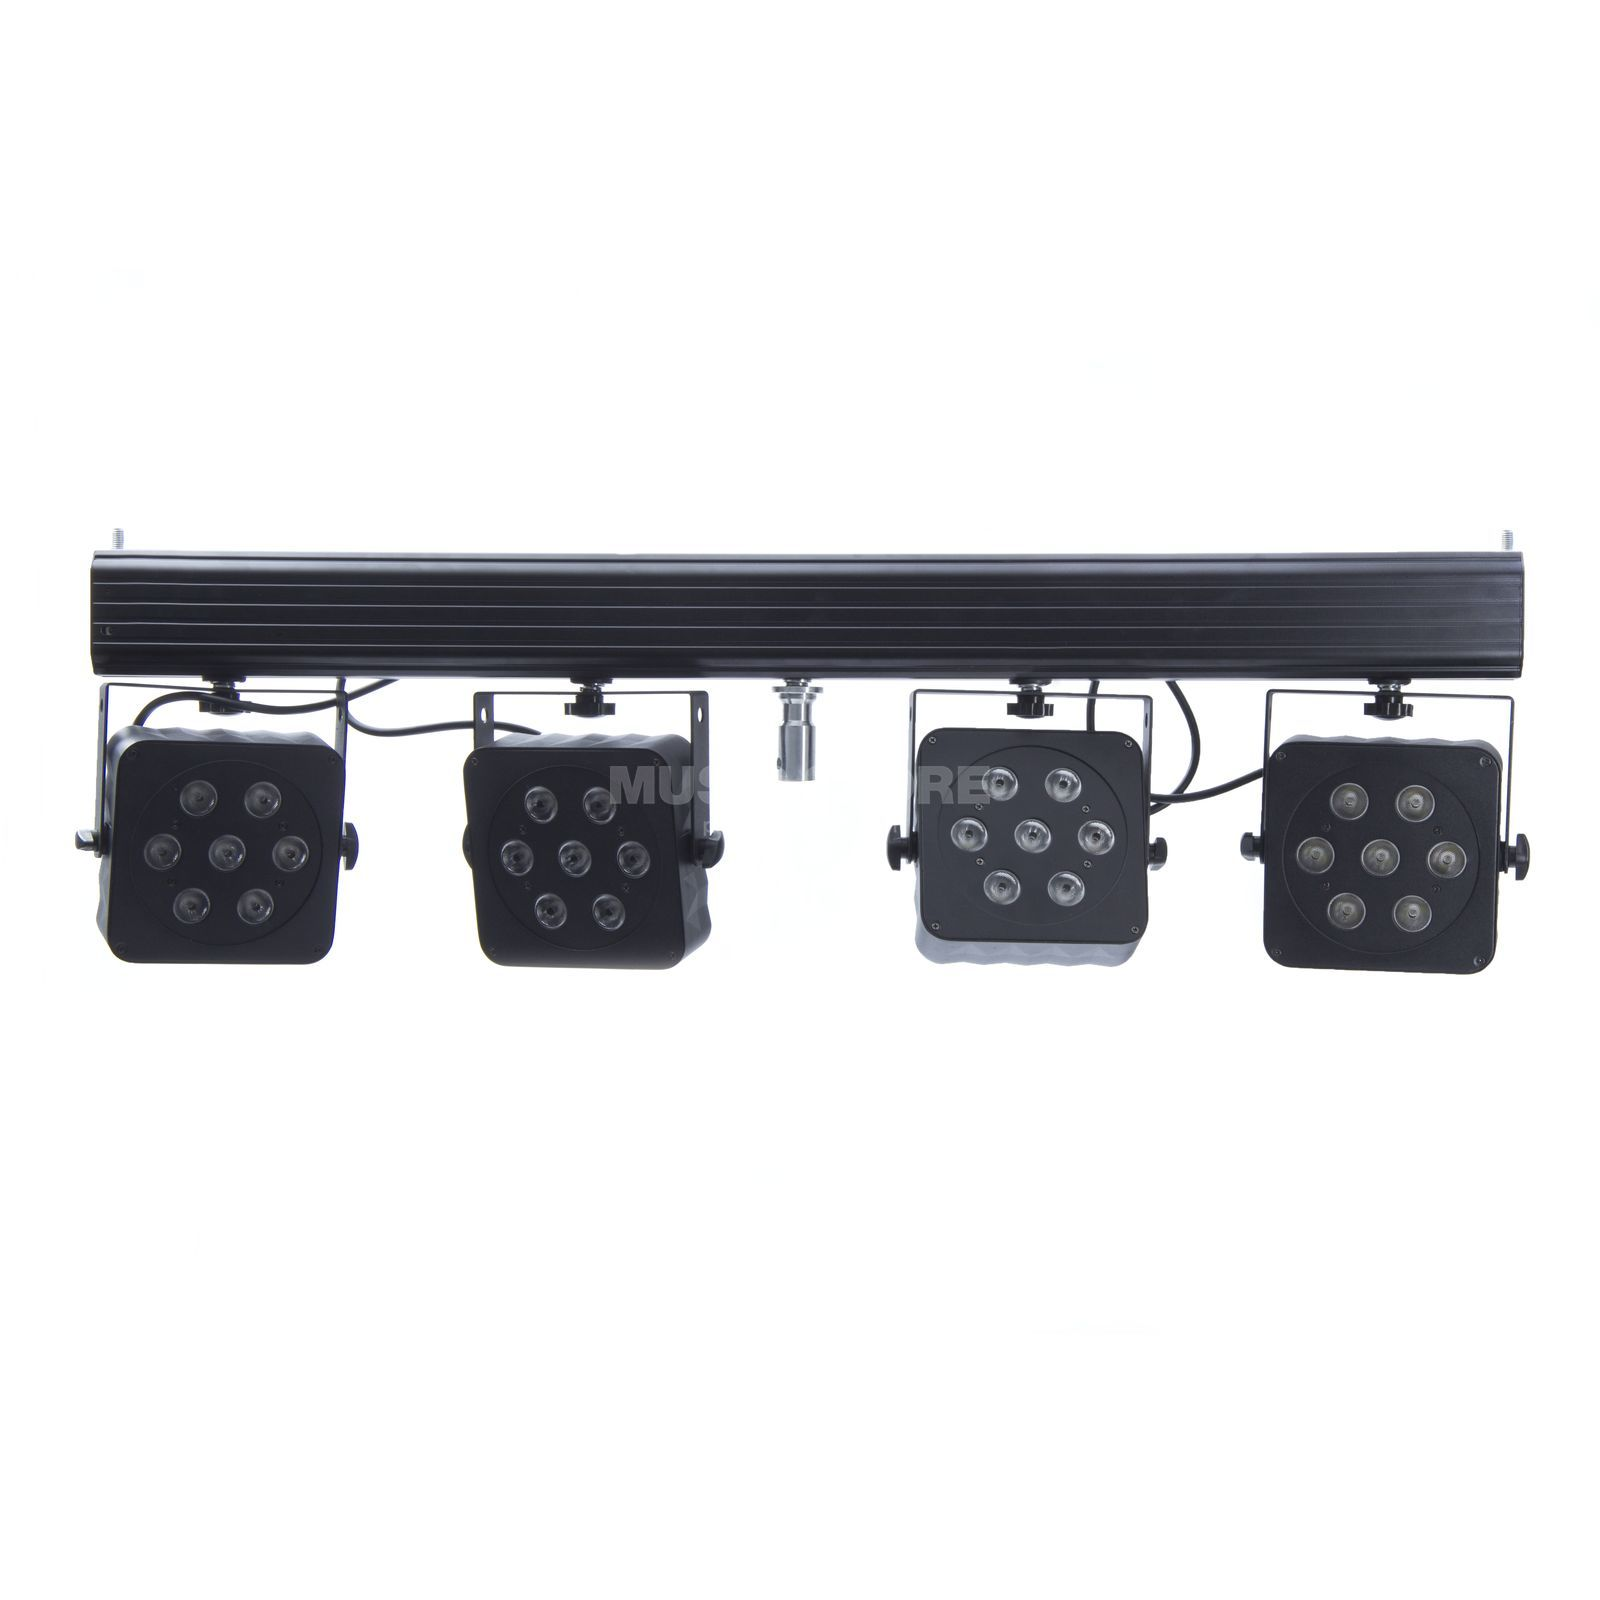 lightmaXX Platinum CLS-3 QUAD-LED incl. IR-Remote, 28x8W RGBW Produktbild